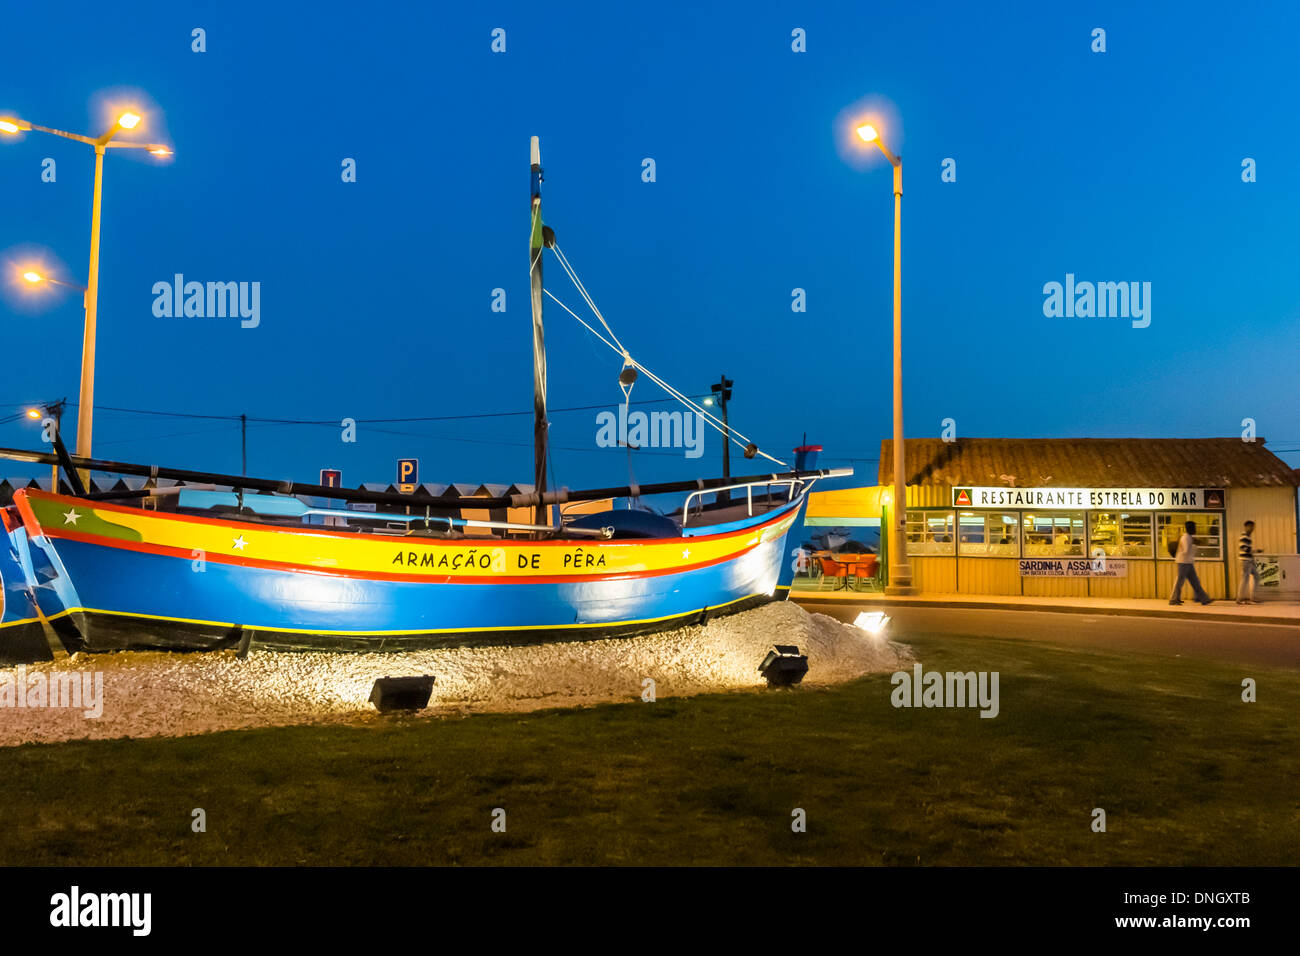 traditionally painted fishing boat in a roundabout traffic in front of restaurant _estrela do mar_ at night, armacao de pera, al - Stock Image